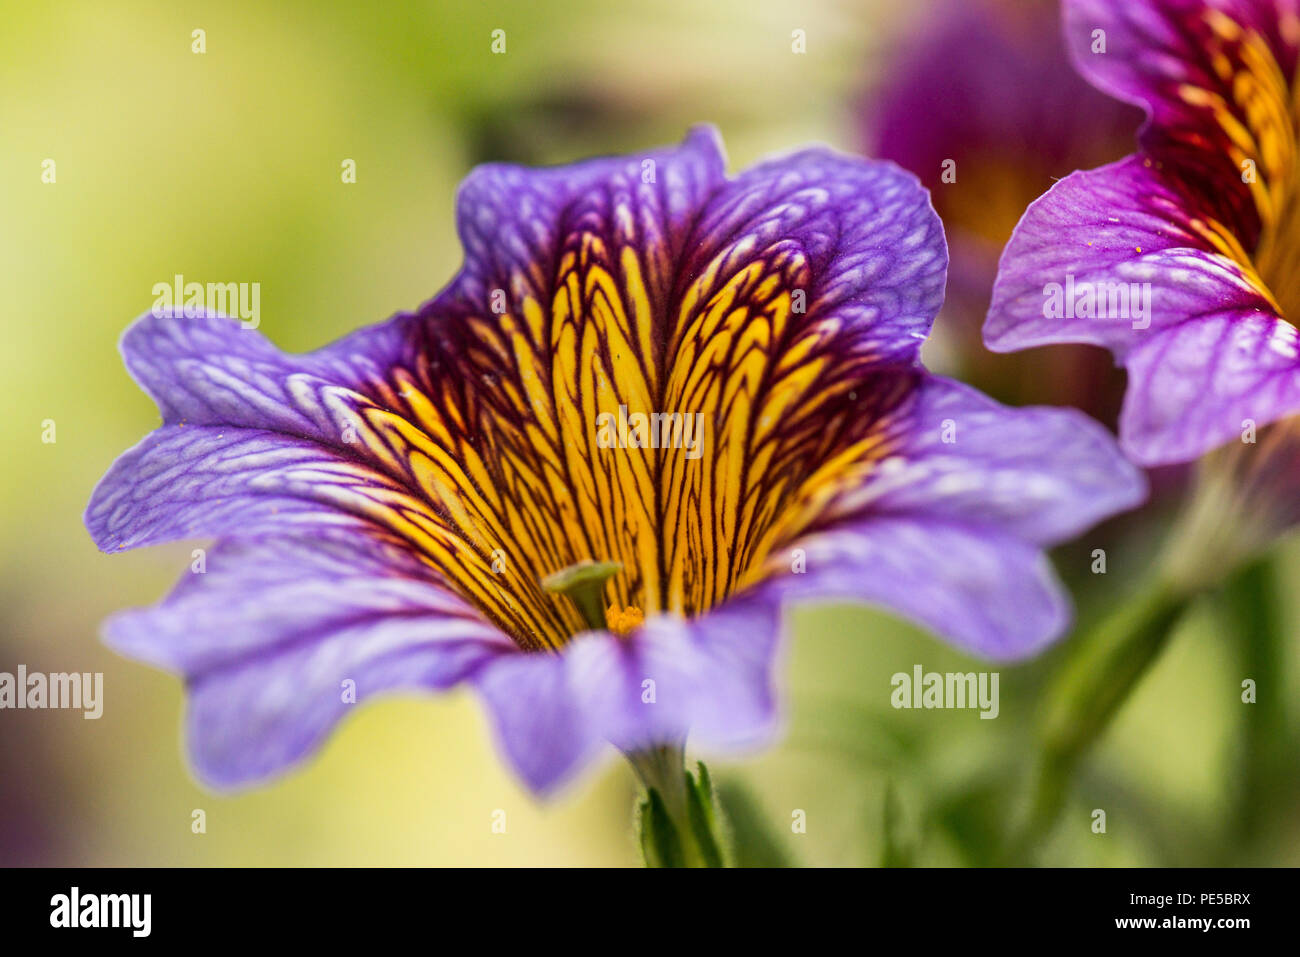 A close up of the flower of a purple painted tongue (Salpiglossis sinuata) Stock Photo